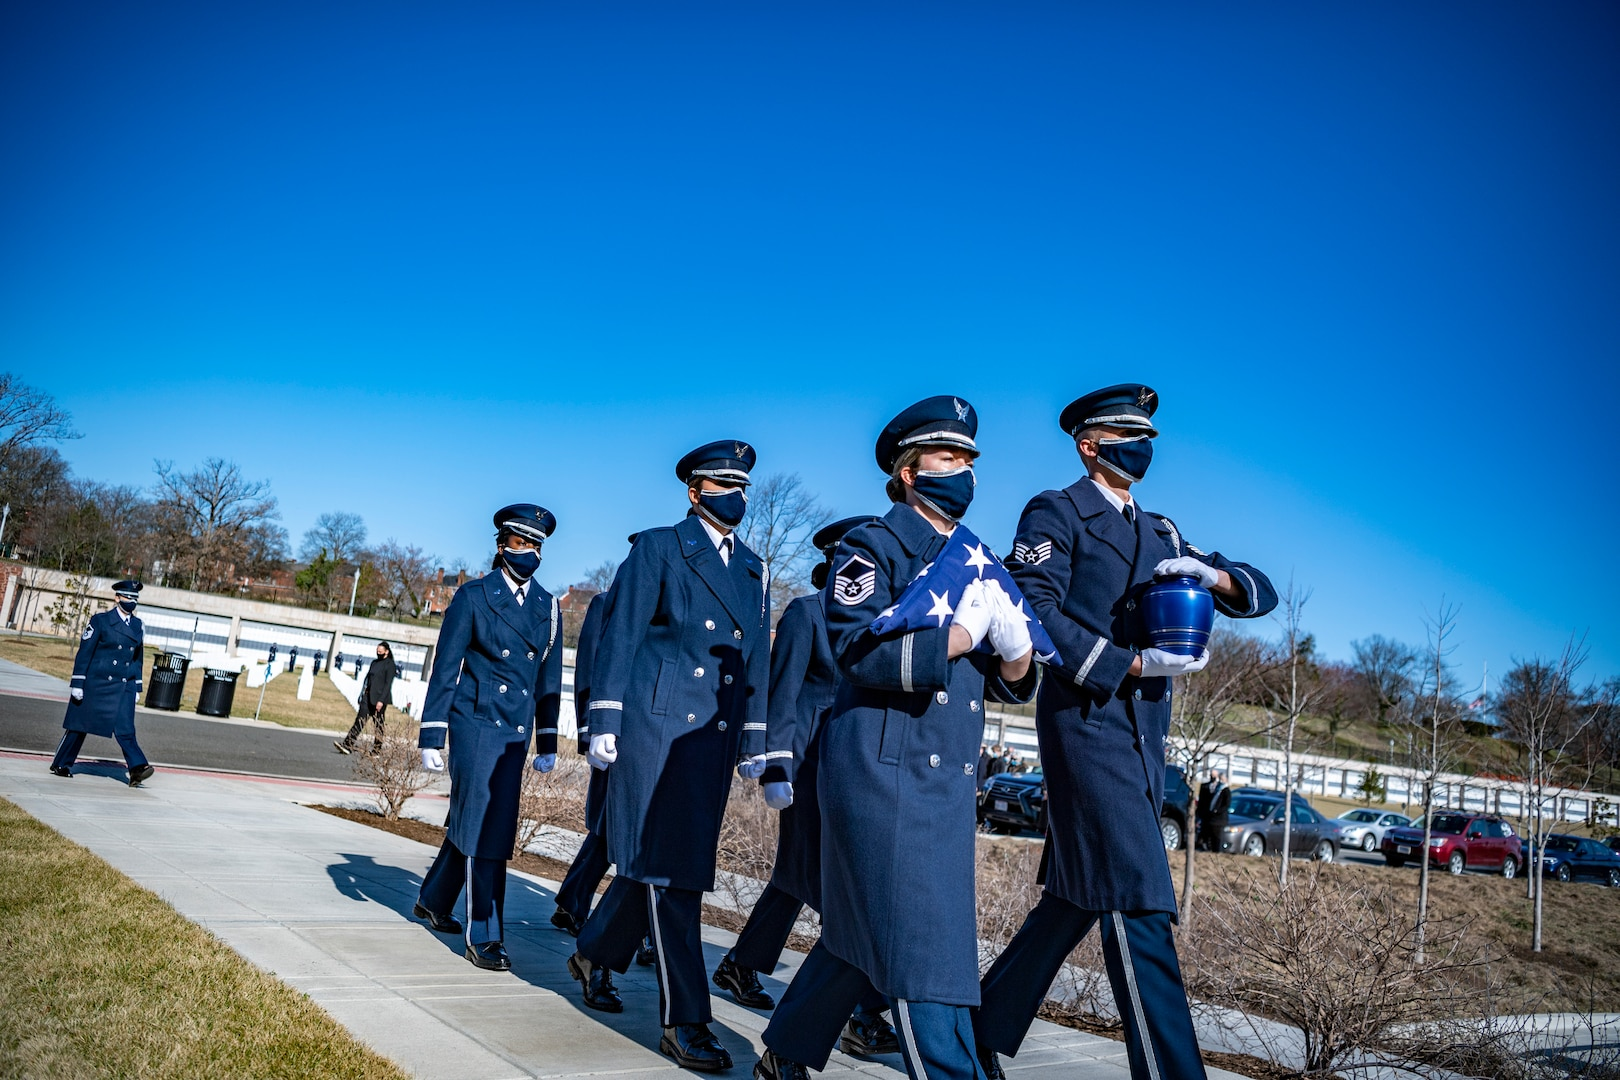 Master Sgt. Kierston Mair, flight chief, pallbearers, carries a flag with the United States Honor Guard Pallbearers as part of modified military funeral honors with funeral escort for U.S. Air Force Lt. Col. Bruce Burns in Section 82 of Arlington National Cemetery, Arlington, Virginia, March 22, 2021. Burns served in the Air Force from 1962 to 1982. His spouse, Janet Burns, received the flag from his service. The funeral was an historic occasion for the United States Honor Guard, with the largest female presence on a pallbearers team in Air Force history.  (U.S. Army photo by Elizabeth Fraser)